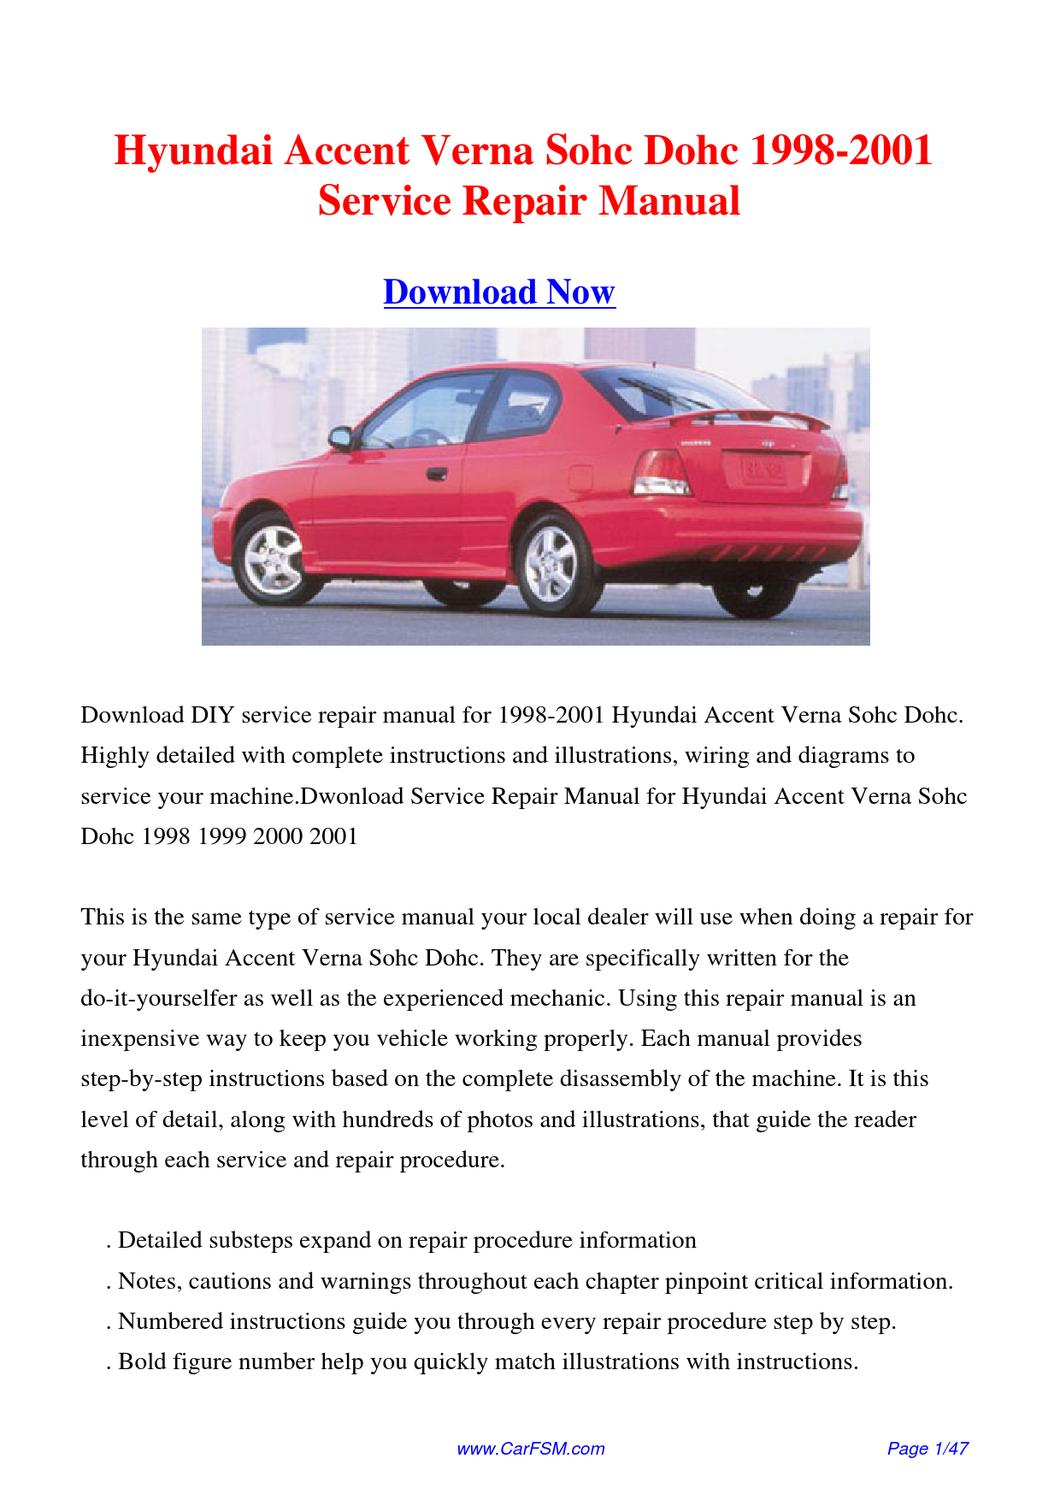 1998 2001 hyundai accent verna sohc dohc service repair hyundai accent 2000 repair manual hyundai accent 2000 service manual